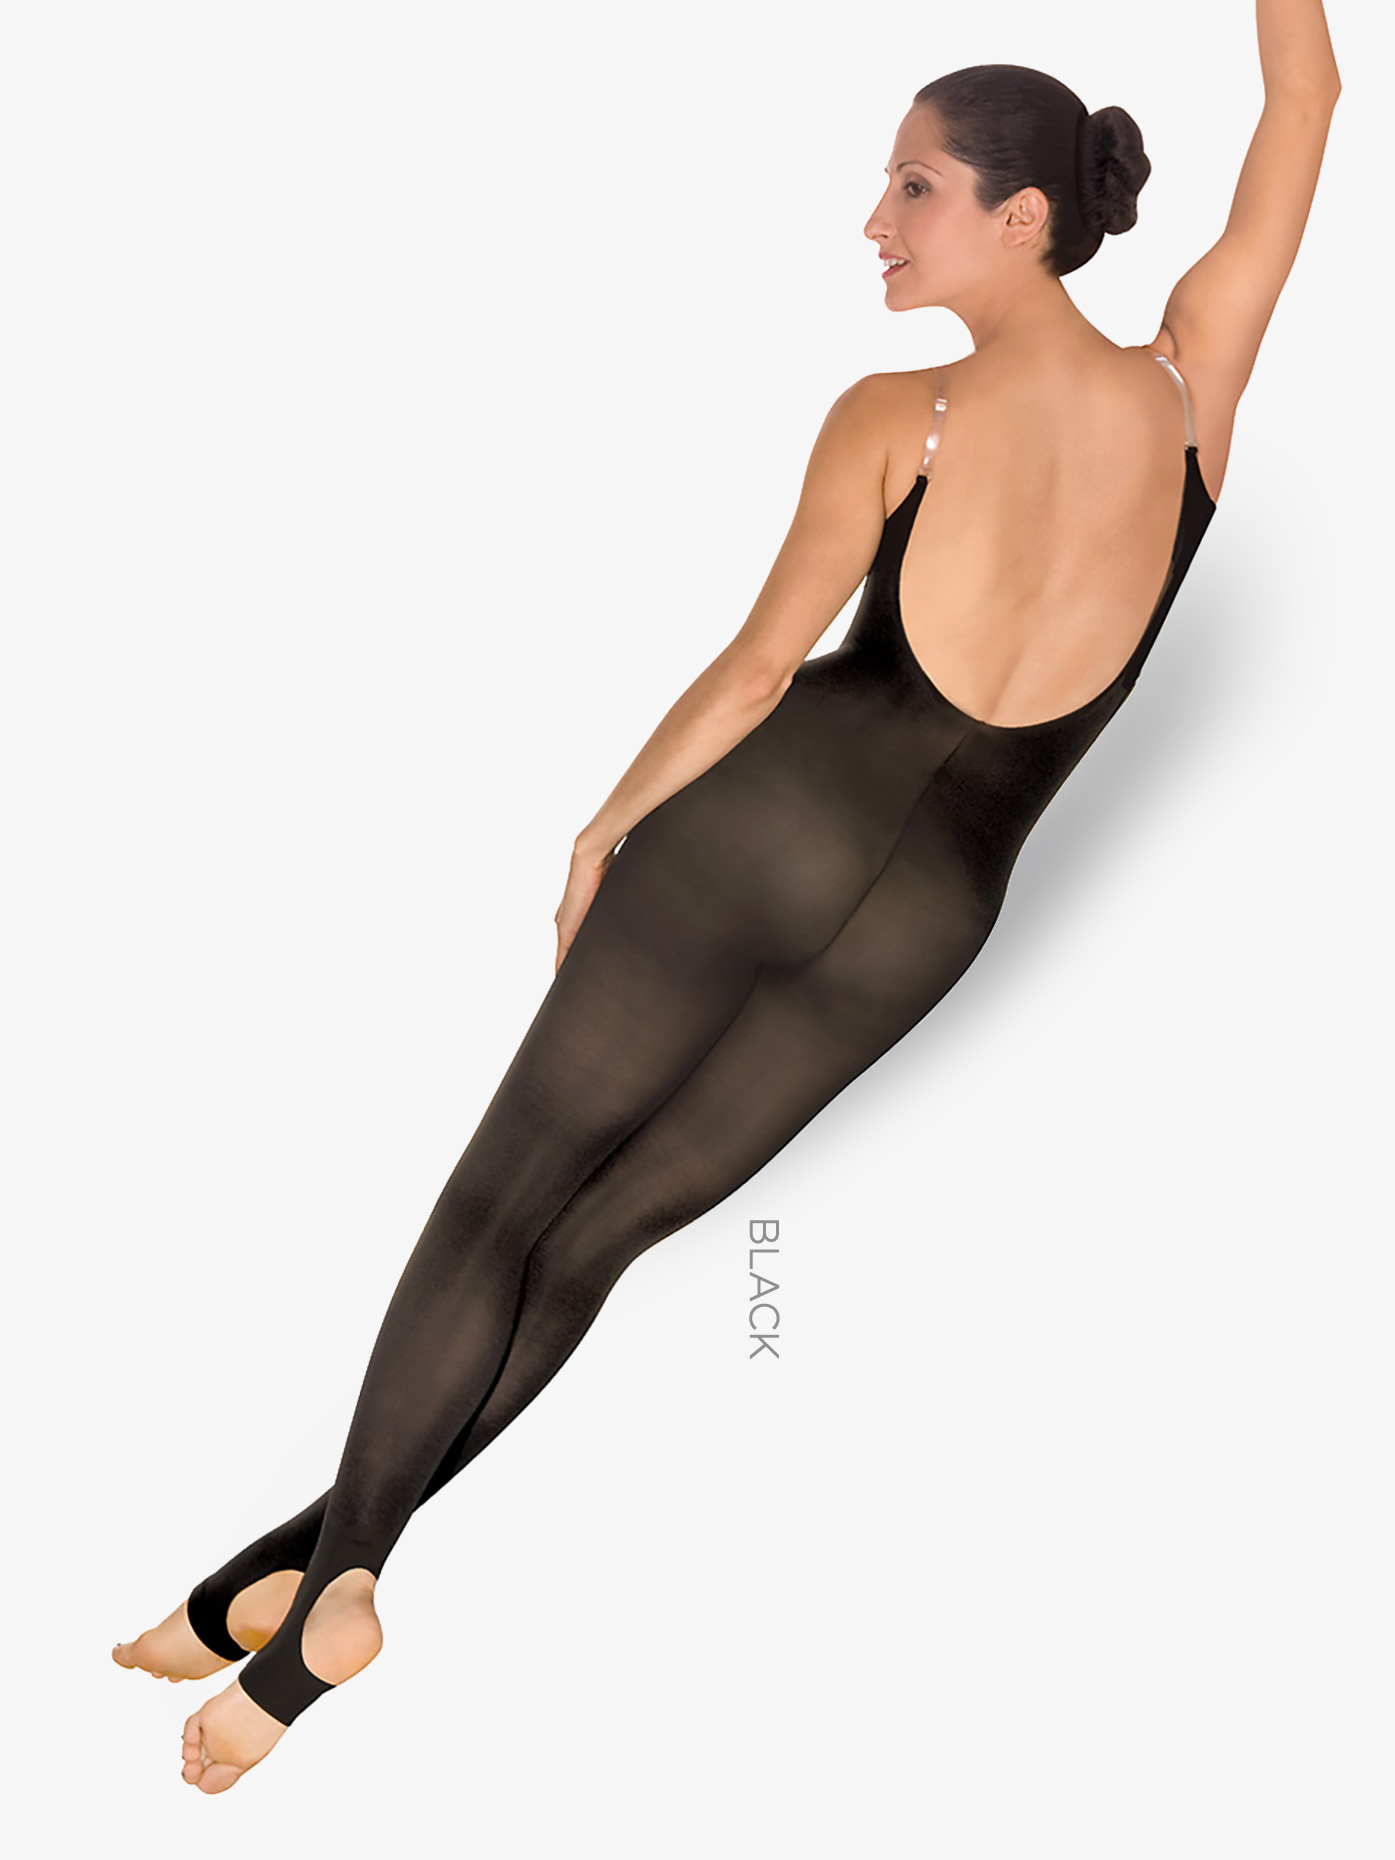 Body Wrappers Adult Stirrup Body Tights A93